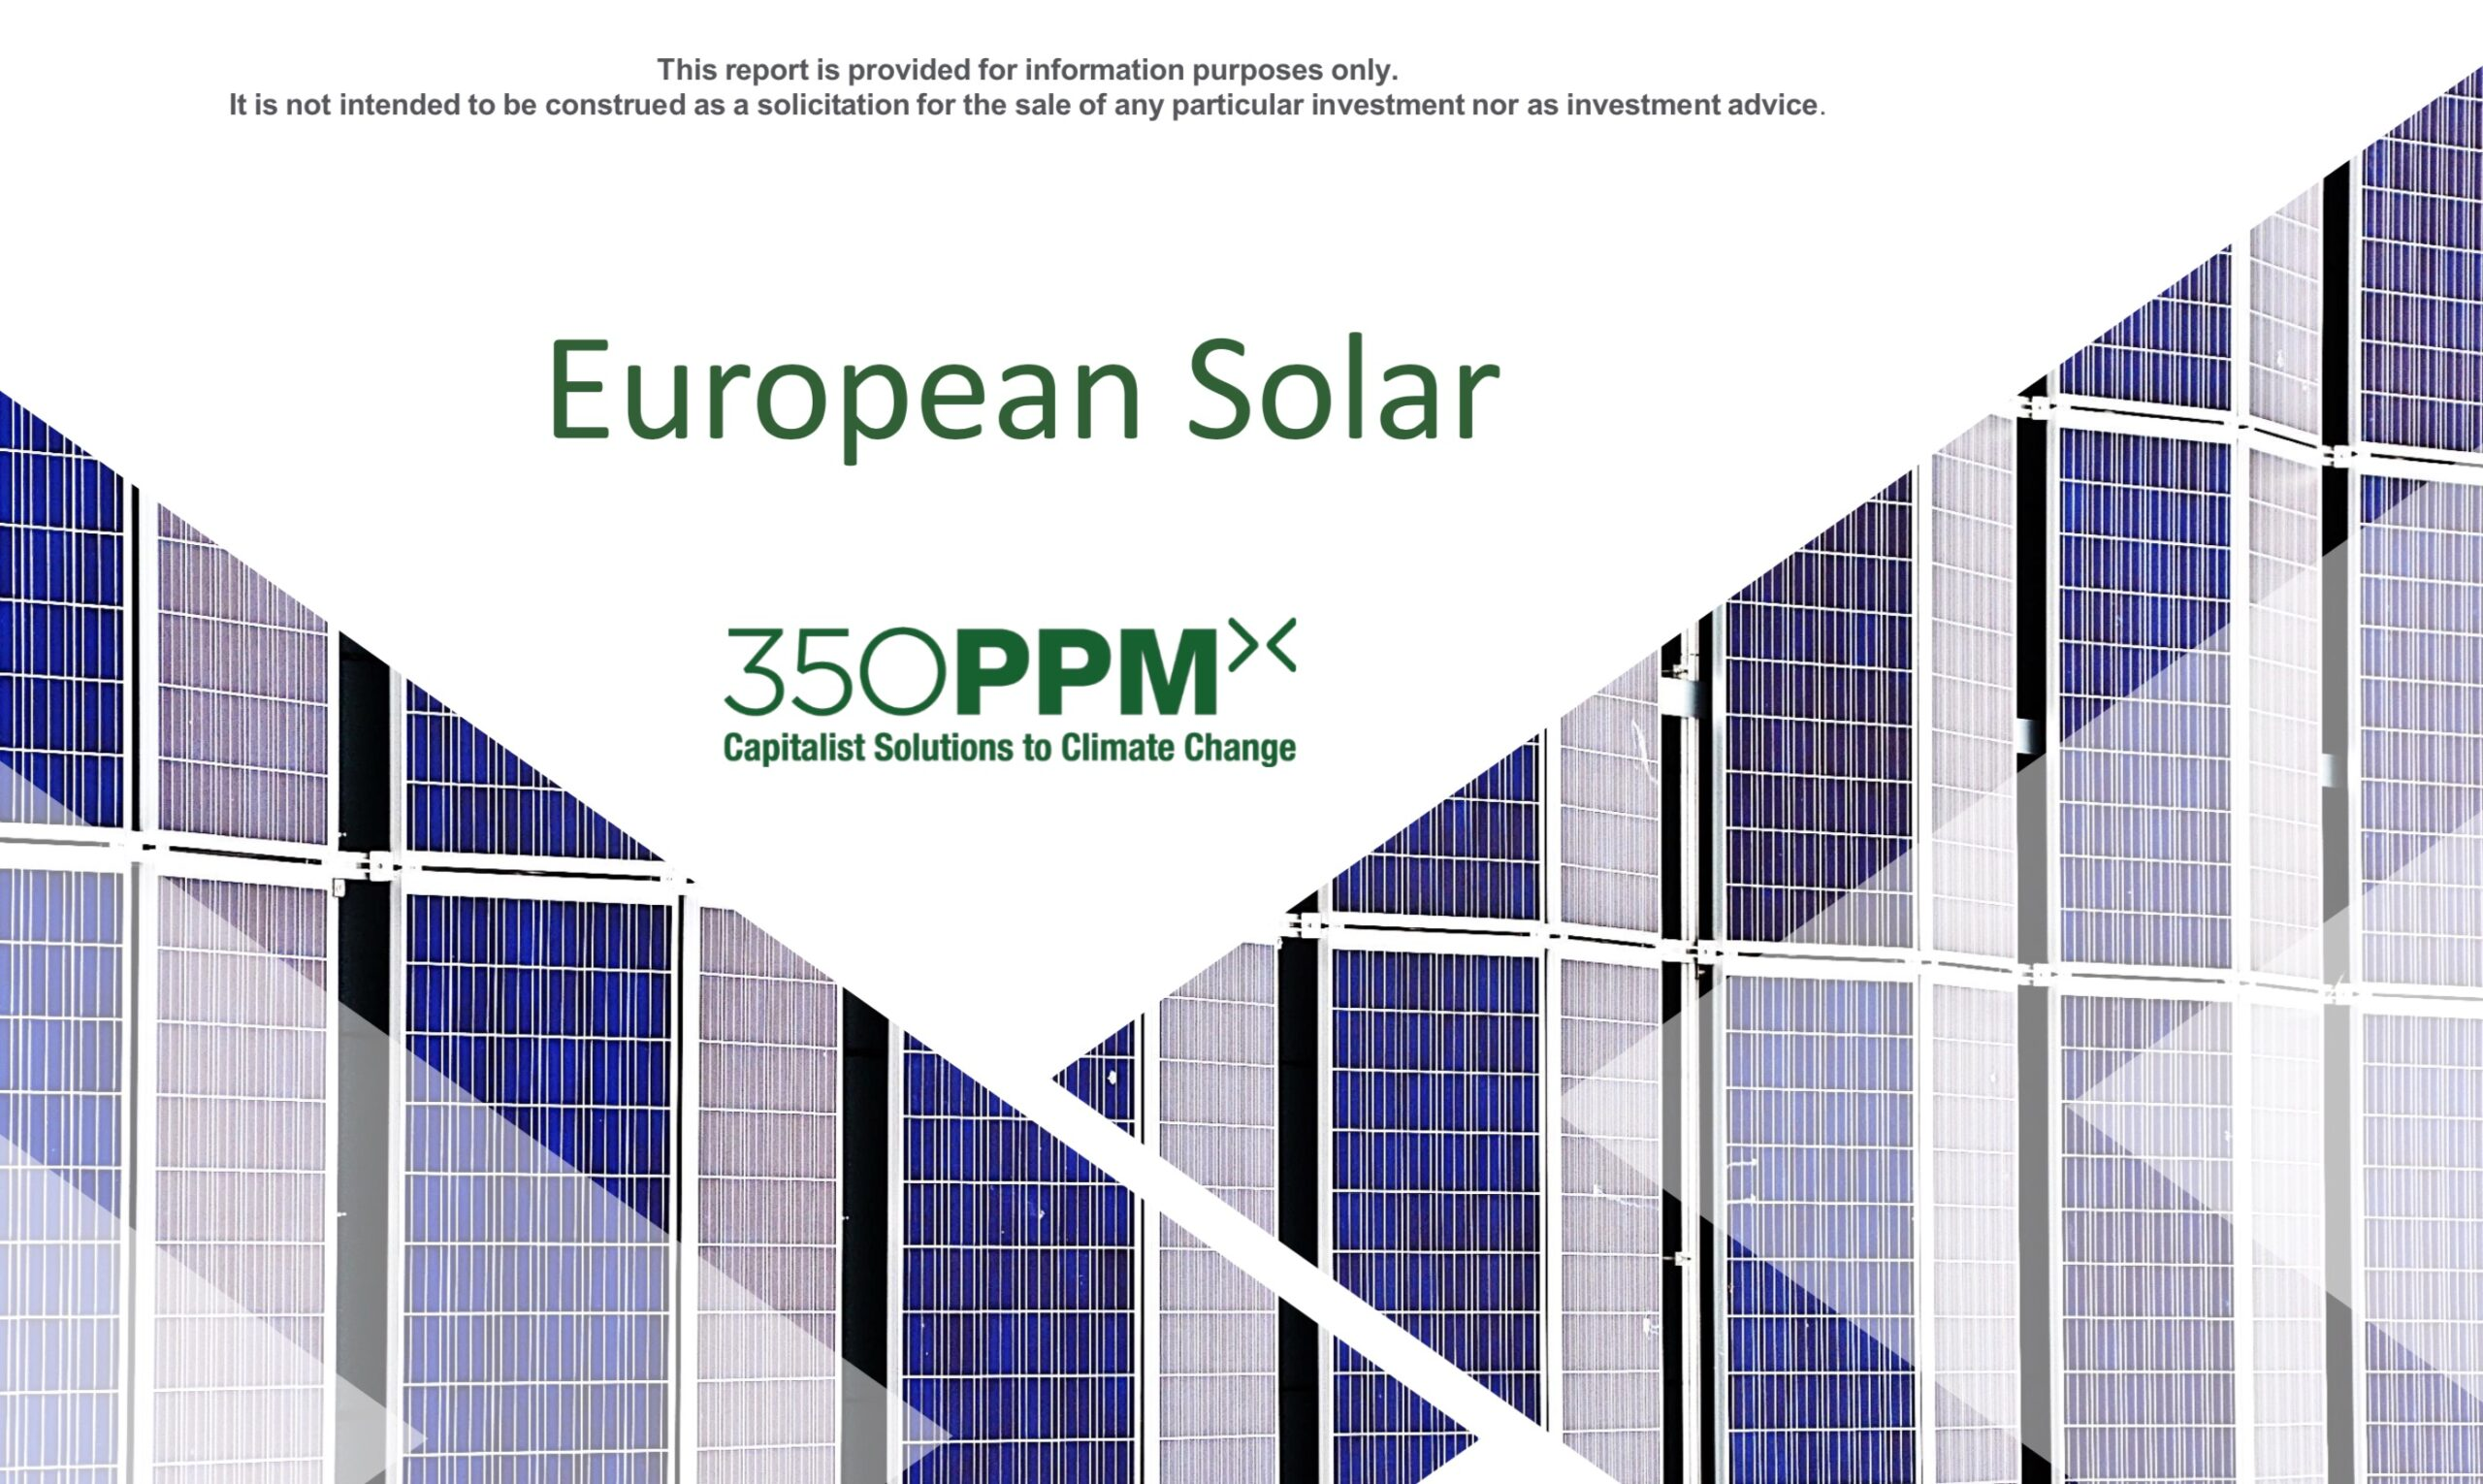 European Solar: Sector Research by 350 PPM Ltd